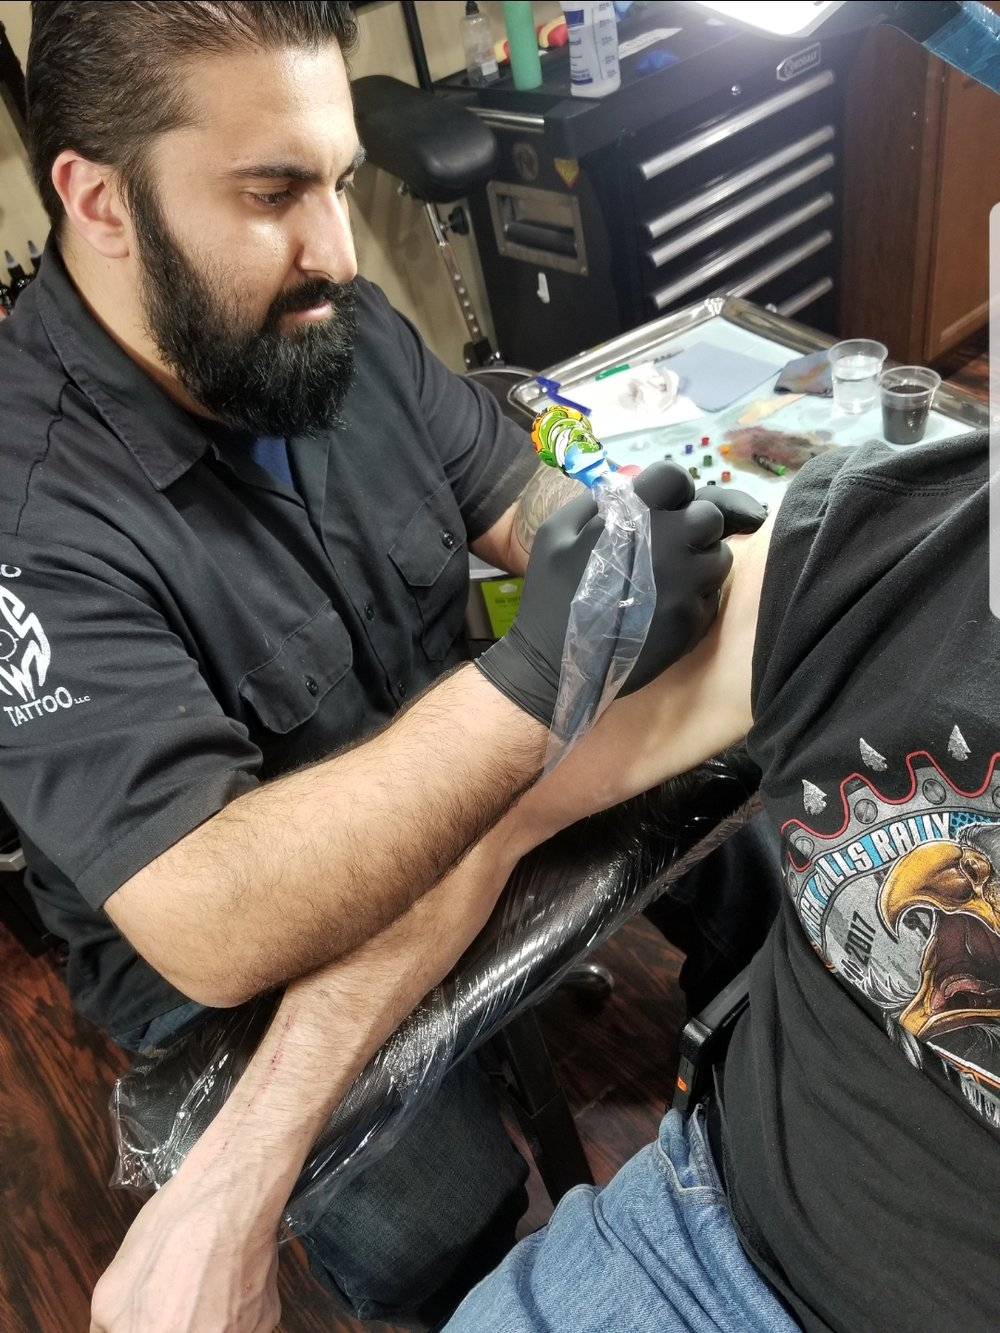 Paul Abraham - Paul has been tattooing since 2014. He enjoys tattooing all styles from realism to American traditional. Click his photo to check out his work!